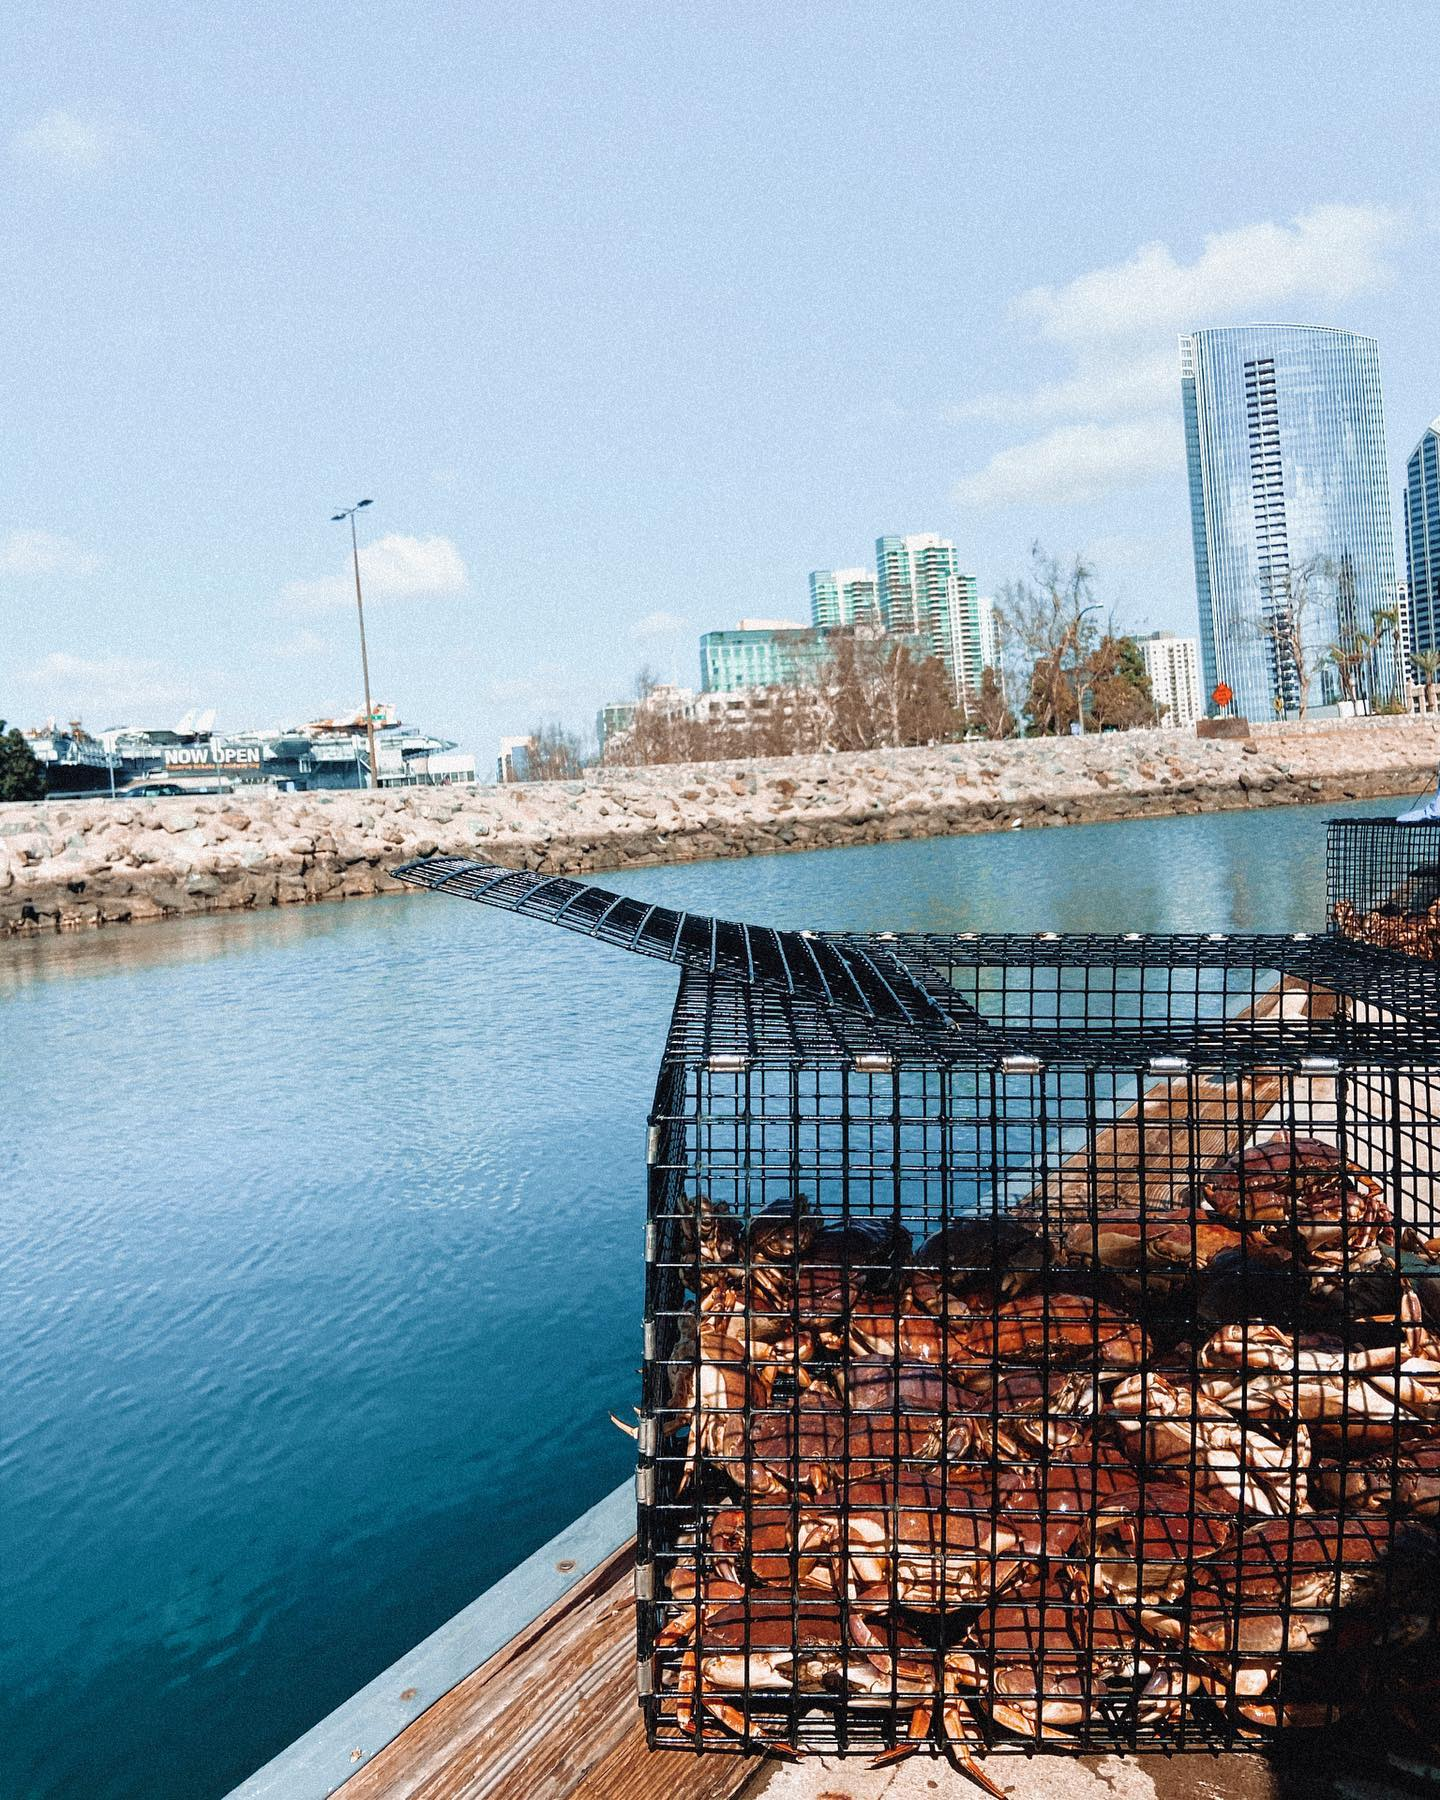 crabs in a trap, daytime city harbor in background